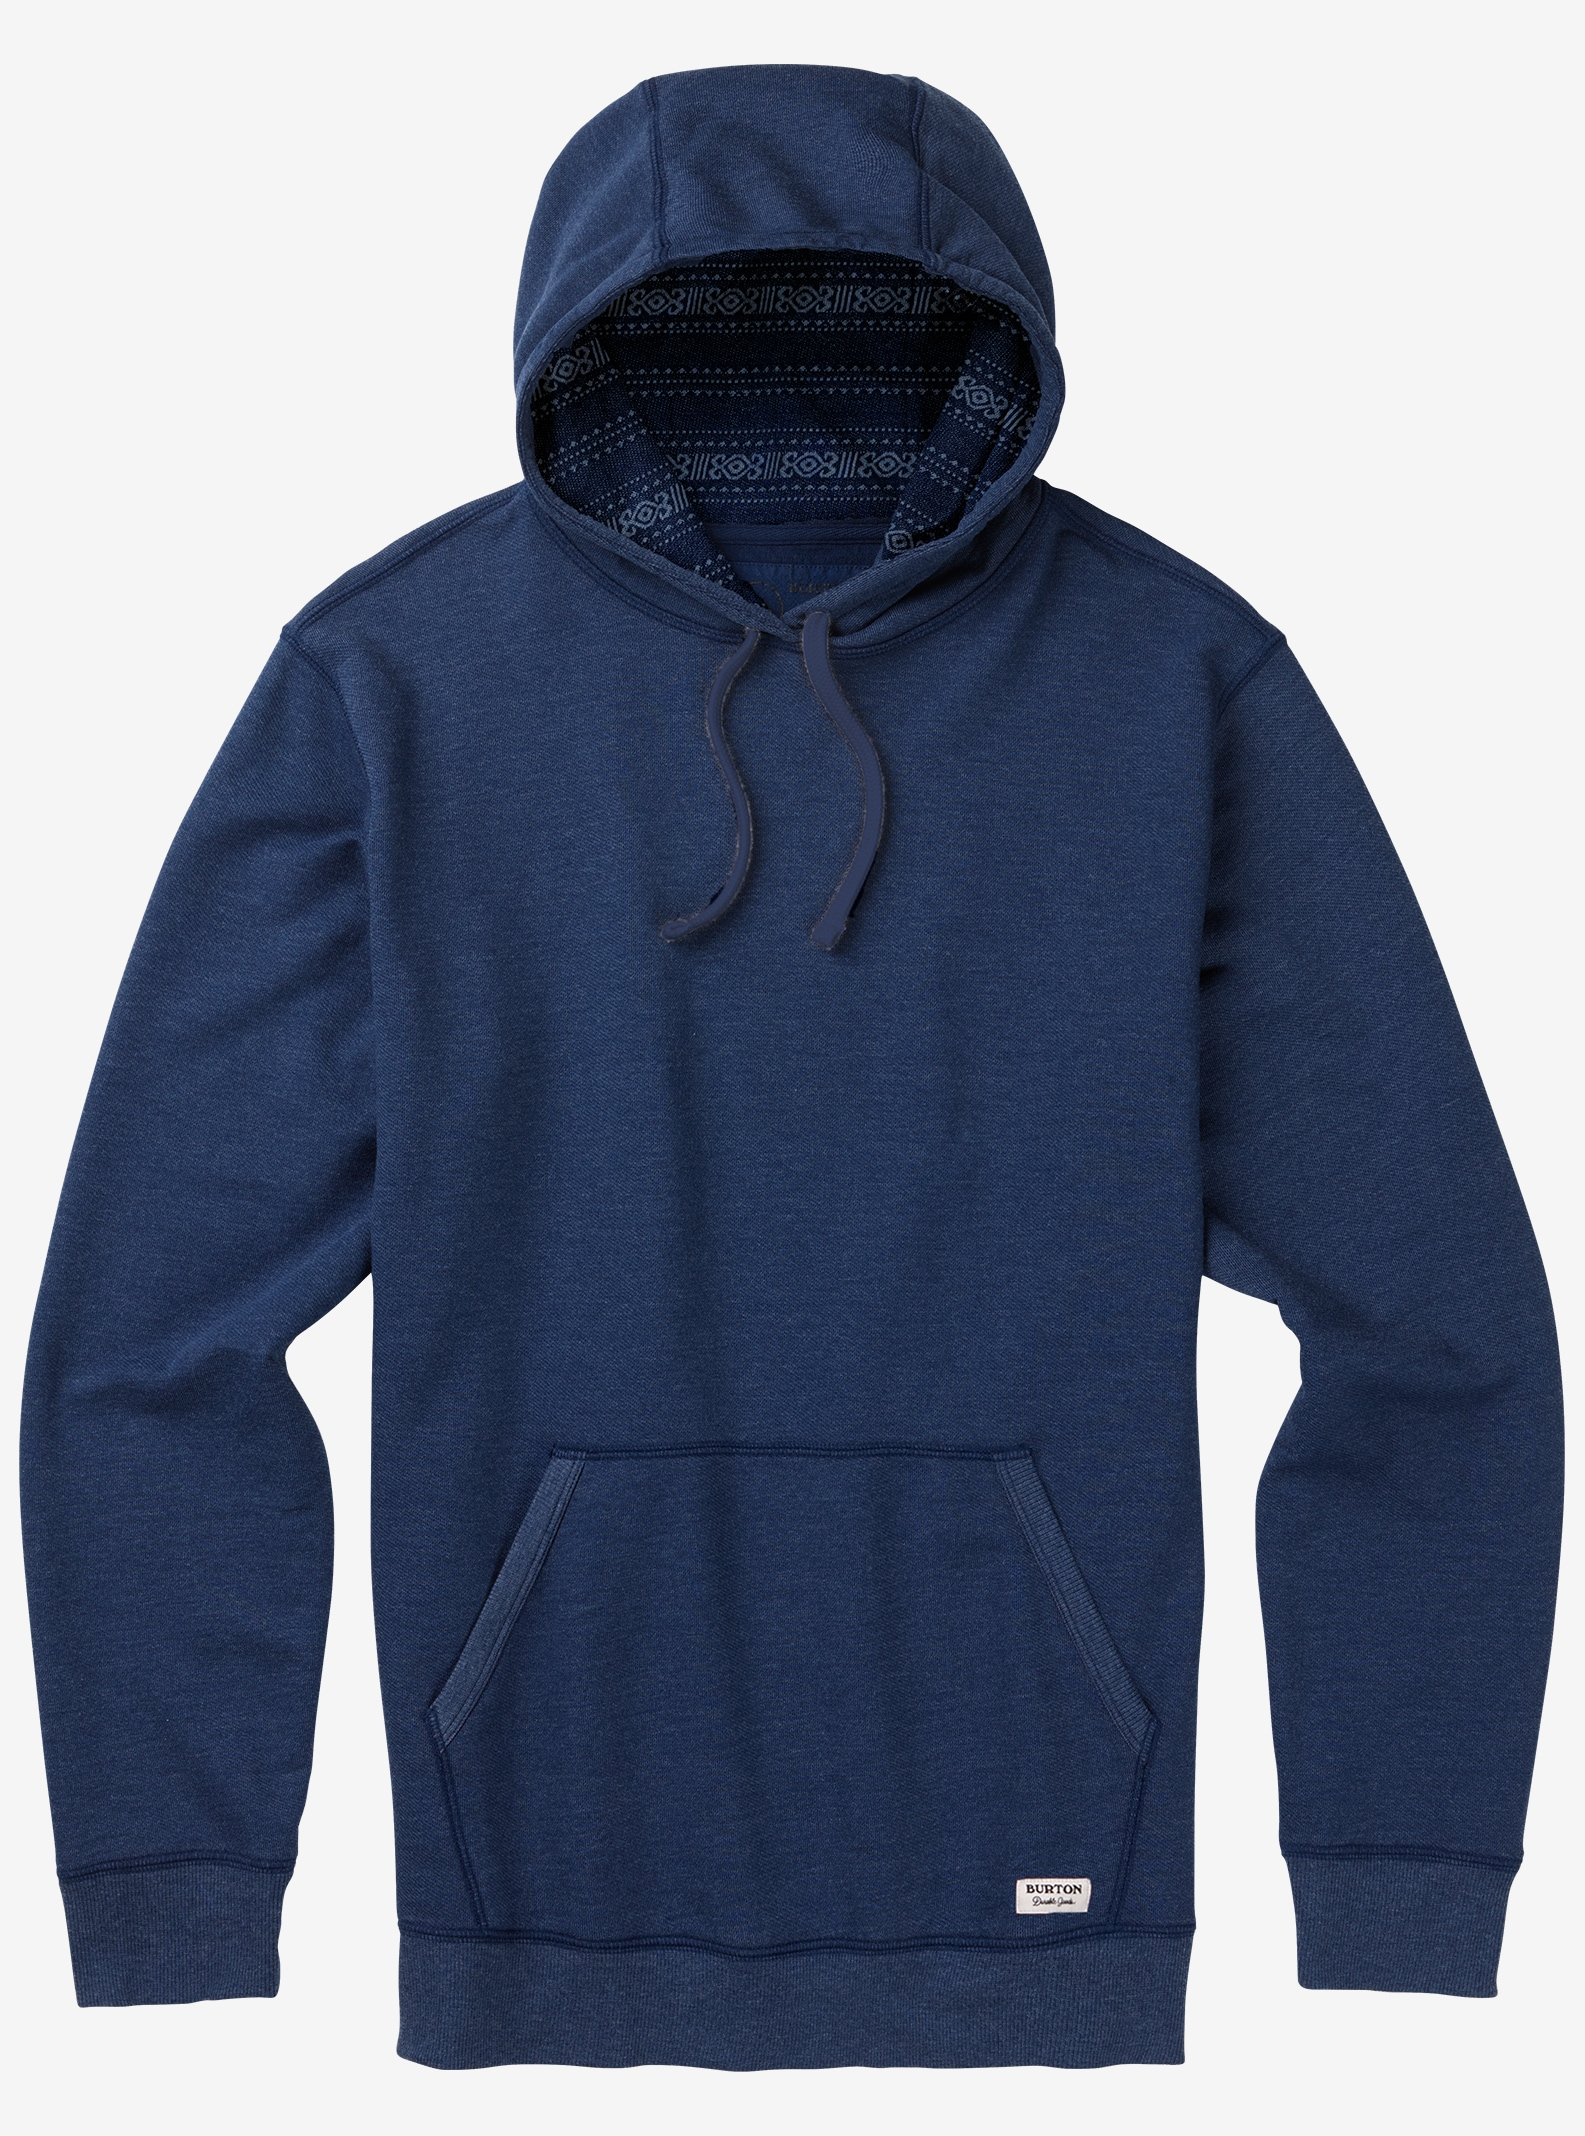 Men's Burton Subvert Pullover Hoodie shown in Mood Indigo